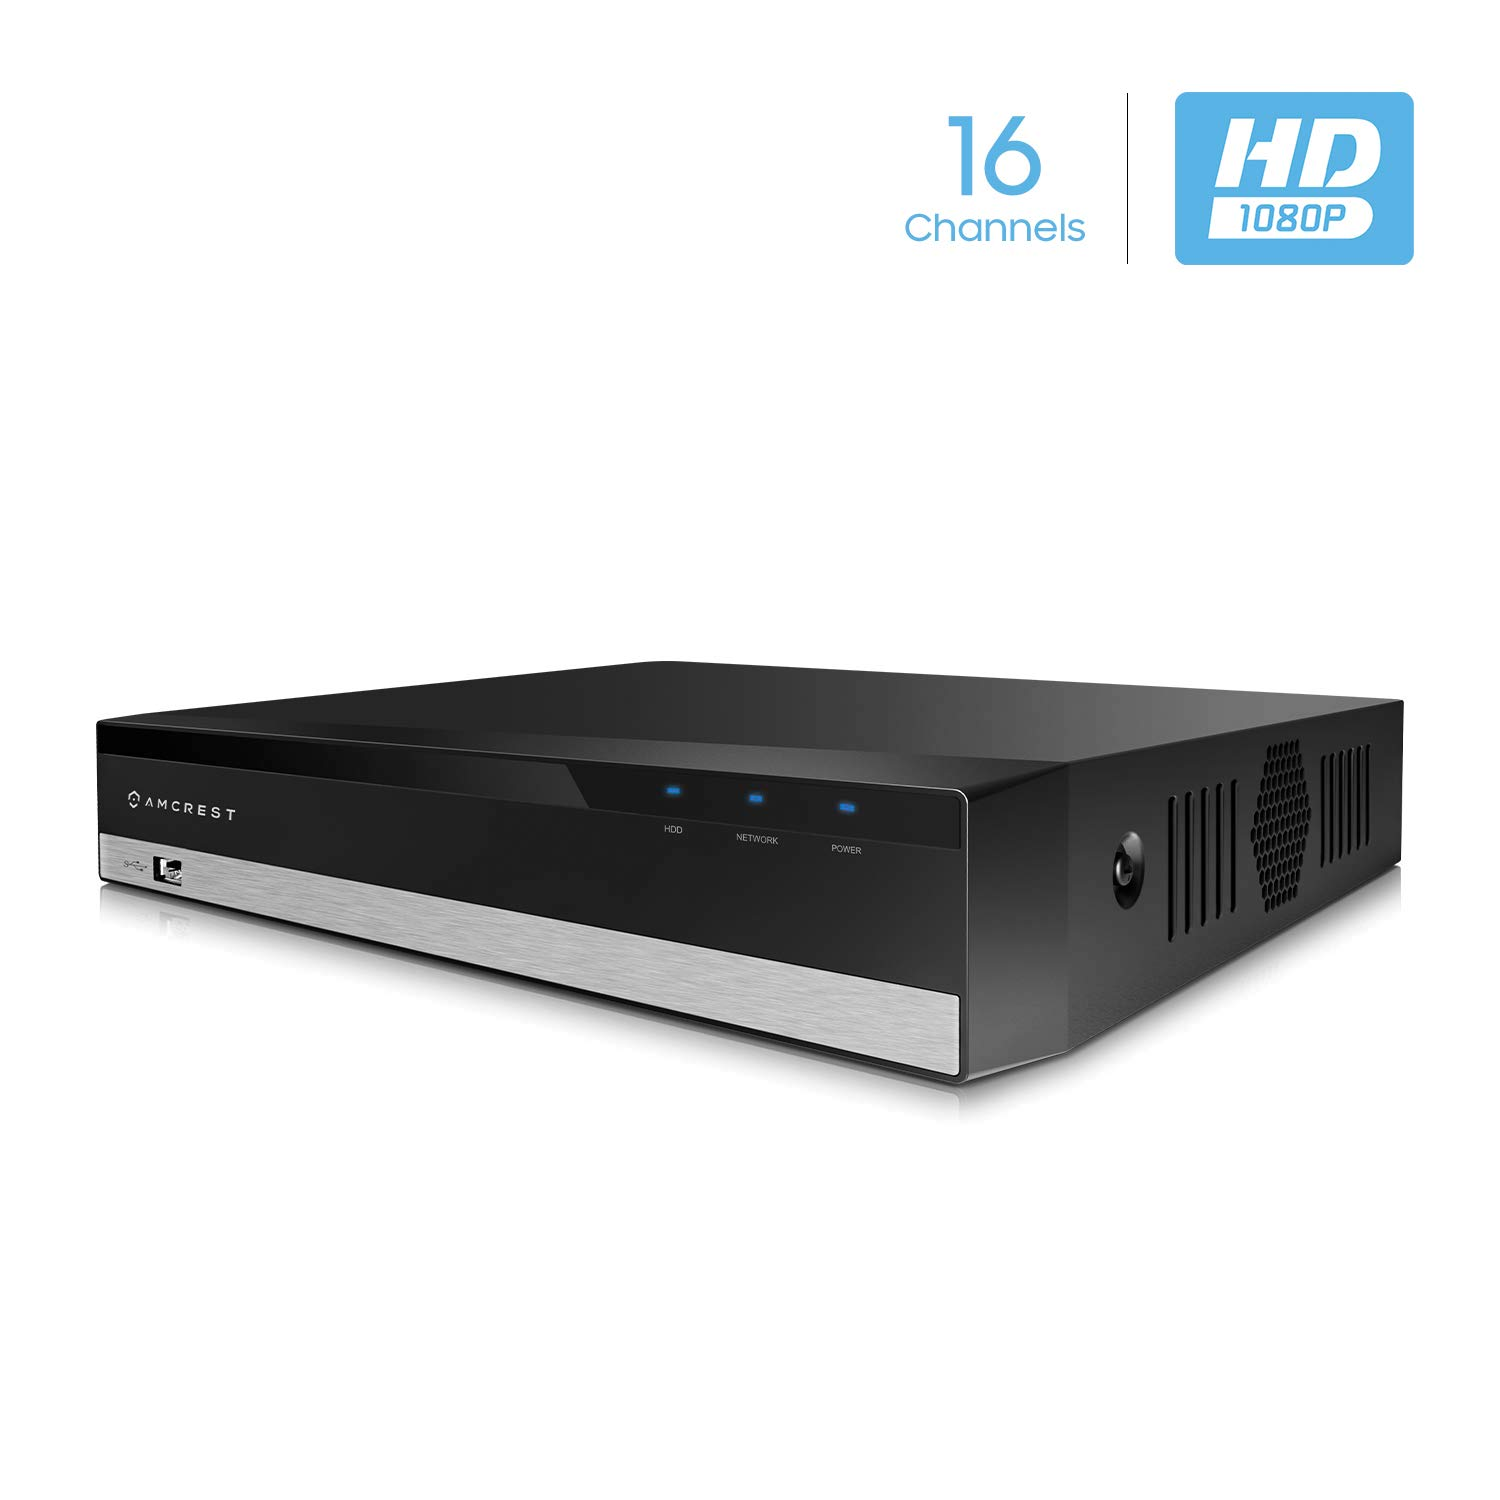 Amcrest ProHD 1080P 16CH Video Security DVR Digital Recorder, 16-Channel 1080P, Supports 960H/HDCVI/HDTVI/AHD/Amcrest IP, HDD & Cameras NOT Included, Remote Smartphone Access (AMDV108116-H5) by Amcrest